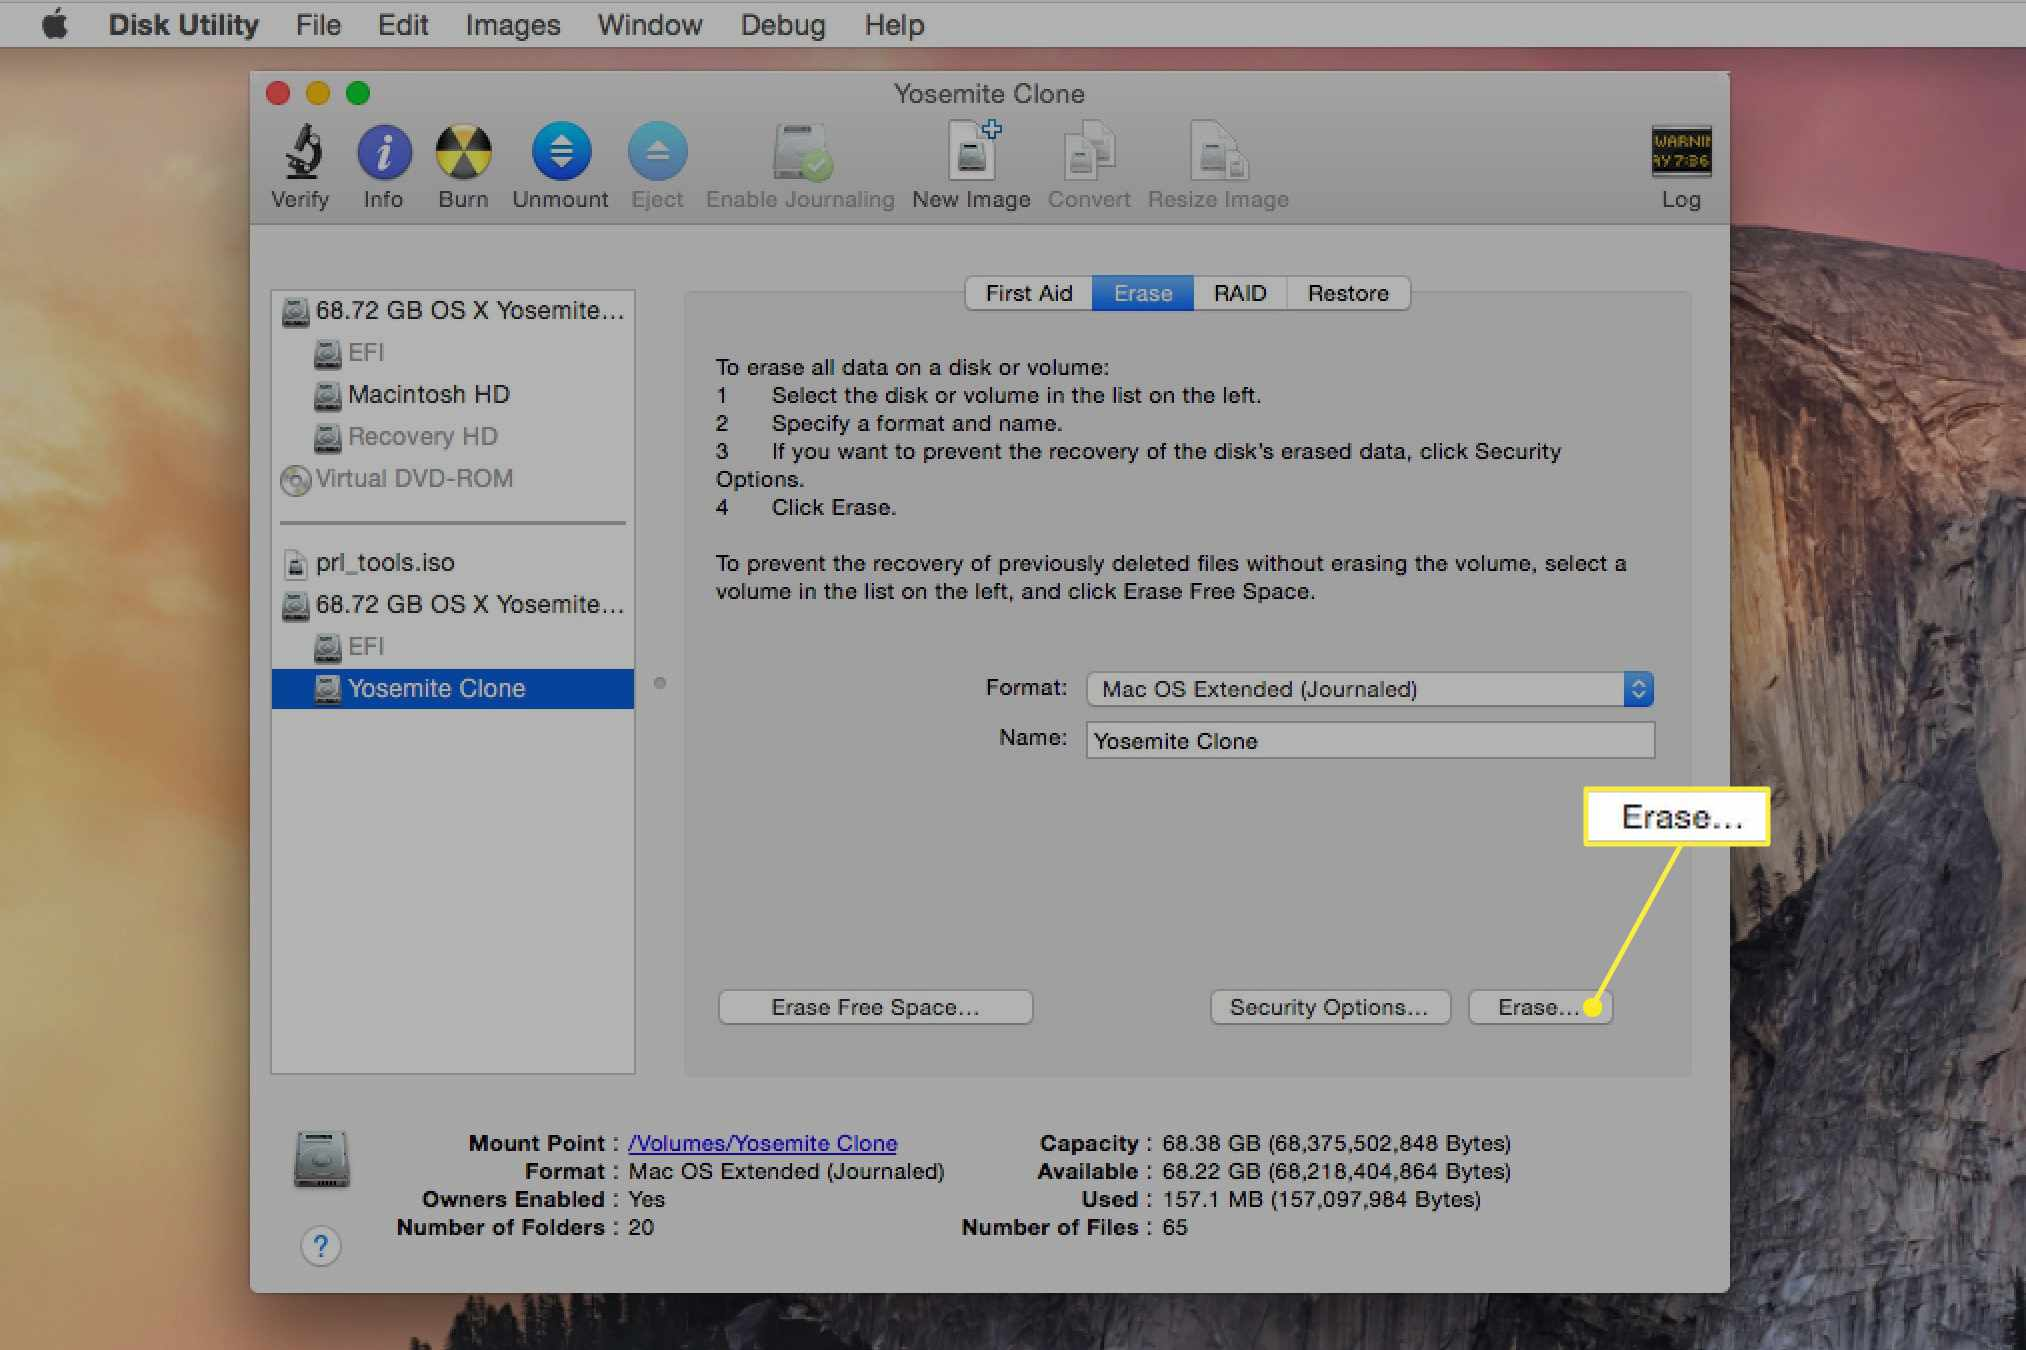 Disk Utility with Erase selected